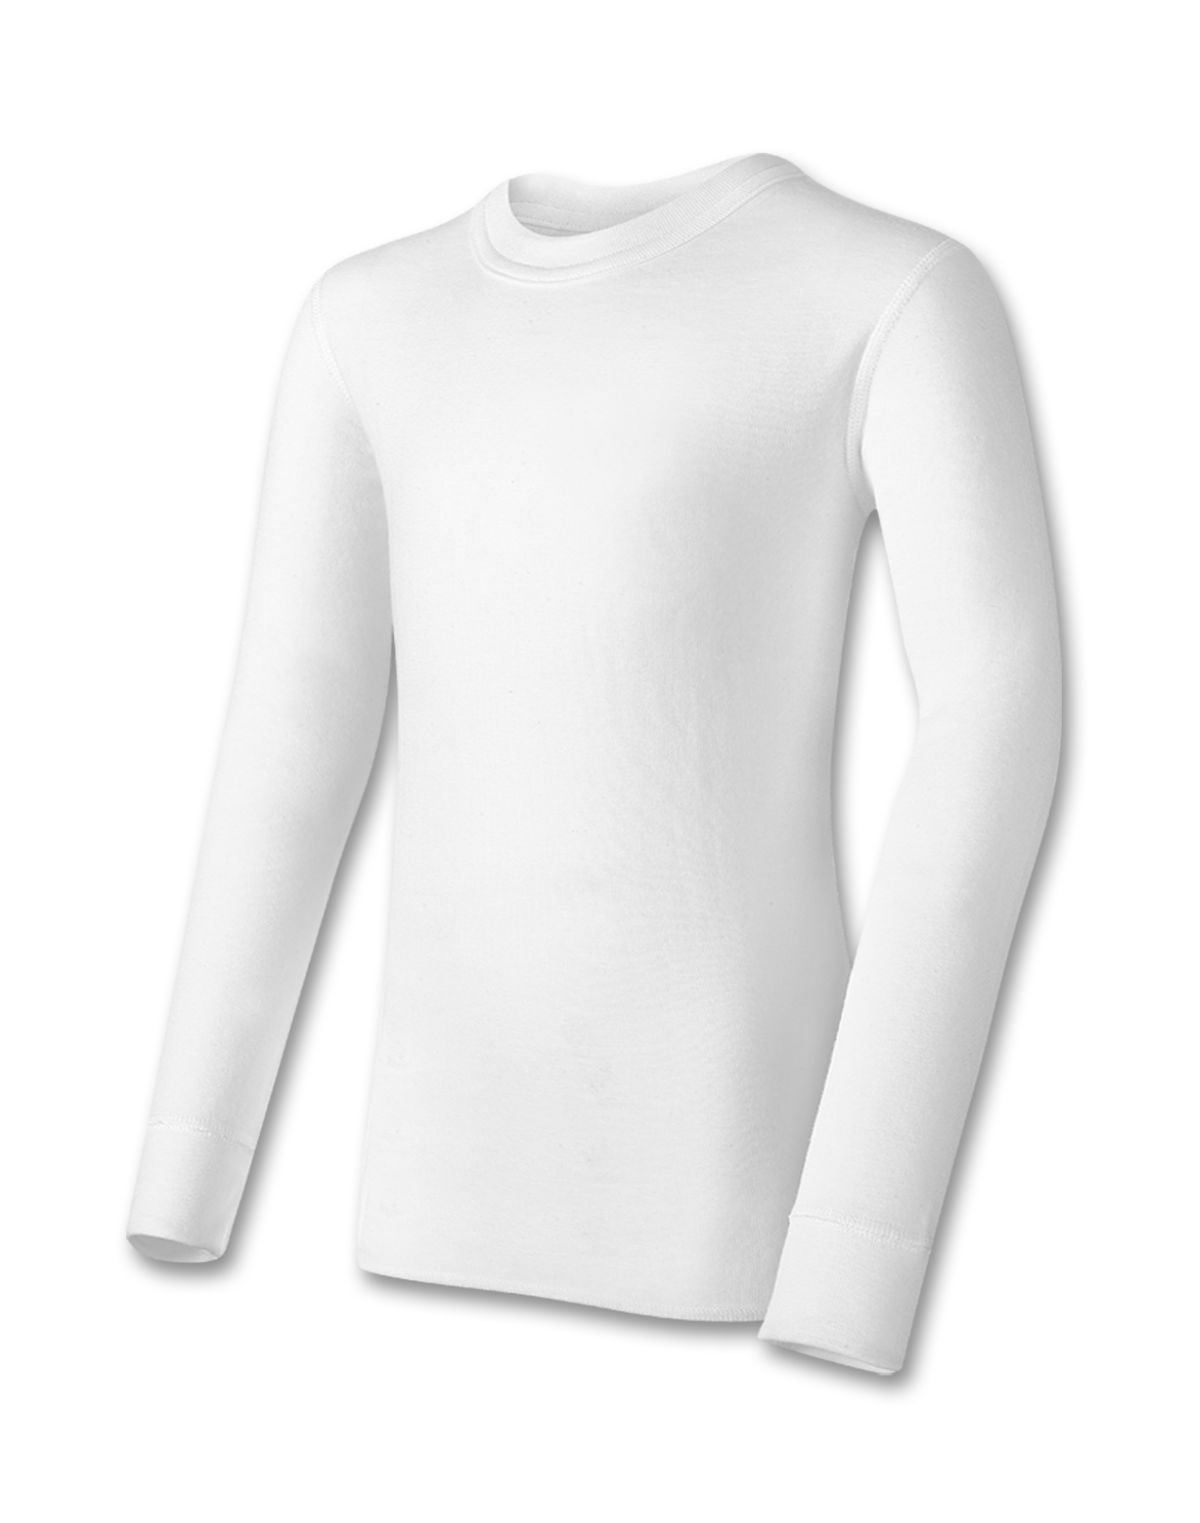 04b8c79dd KMW5 - Duofold by Champion Youth Mid Weight Long Sleeve Thermal Crew ...